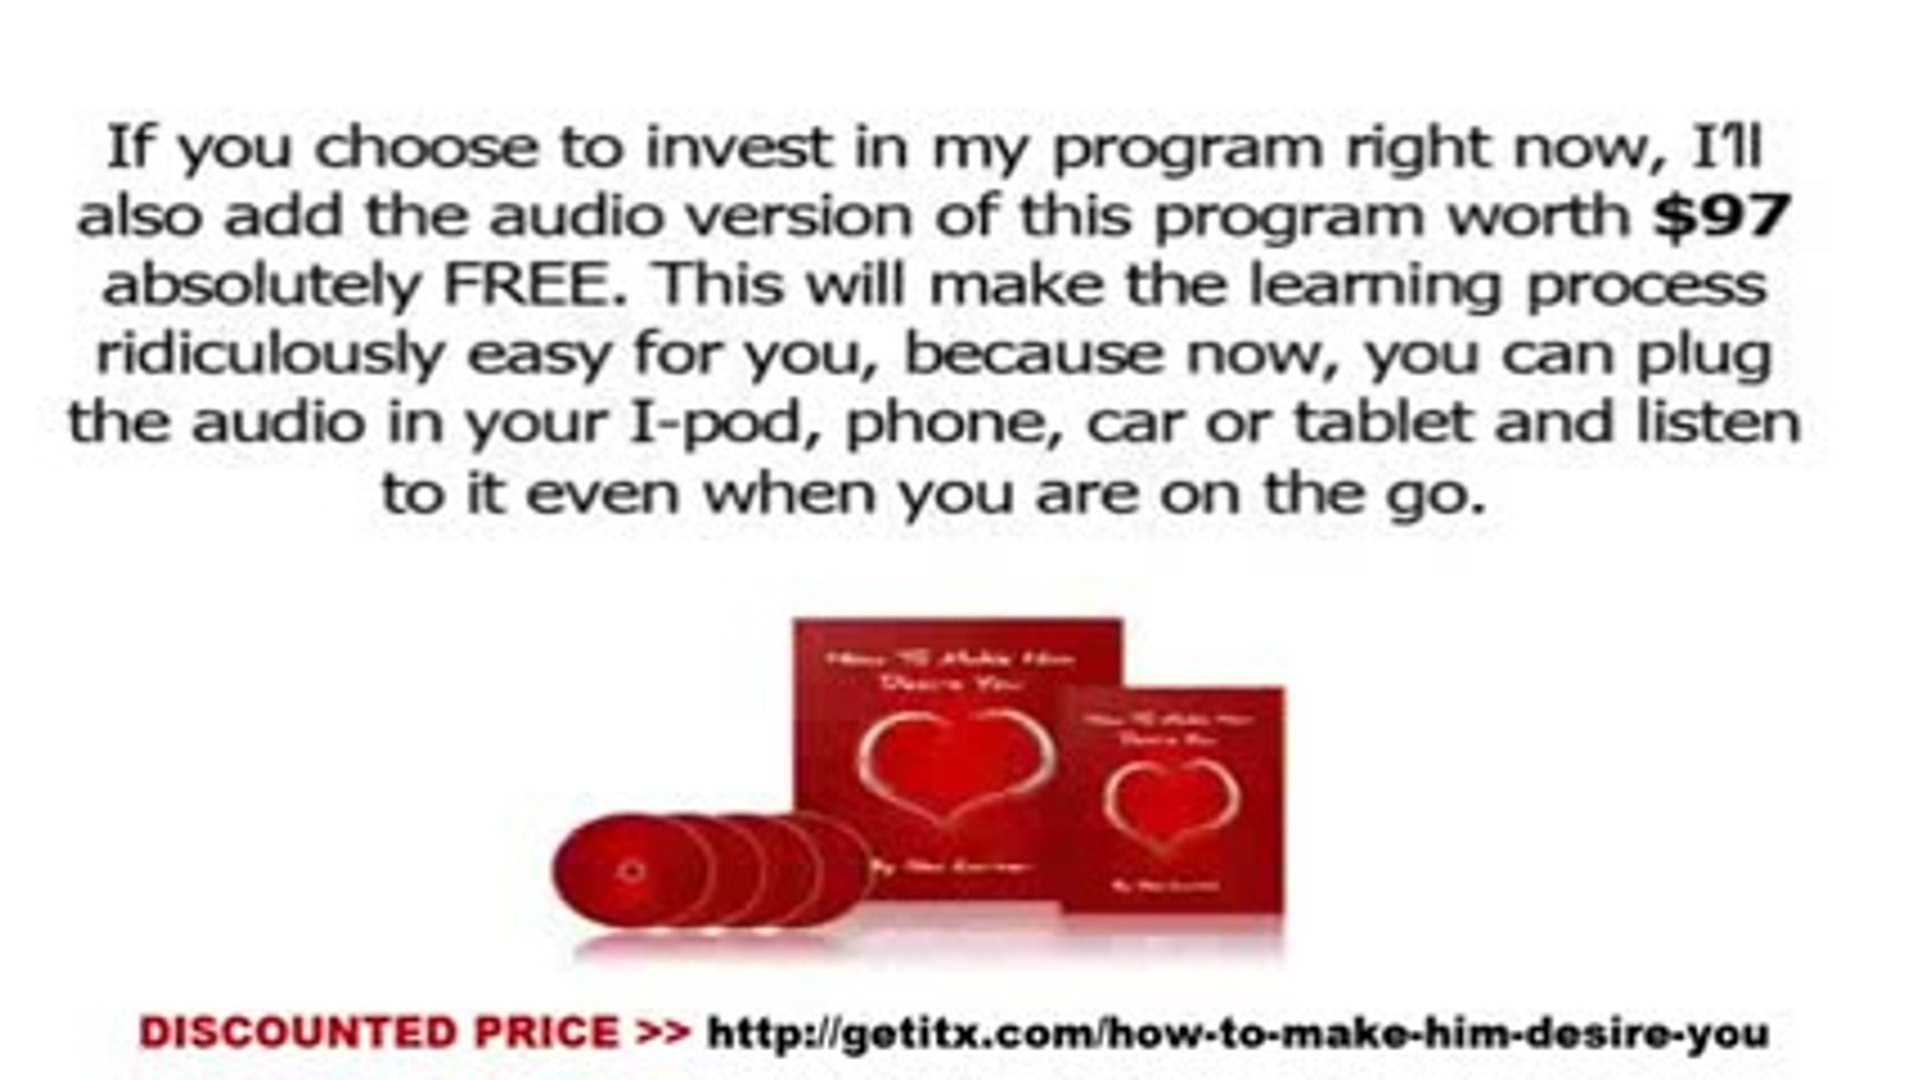 [DISCOUNTED PRICE] How To Make Him Desire You Review - How To Make Him Desire You System Download